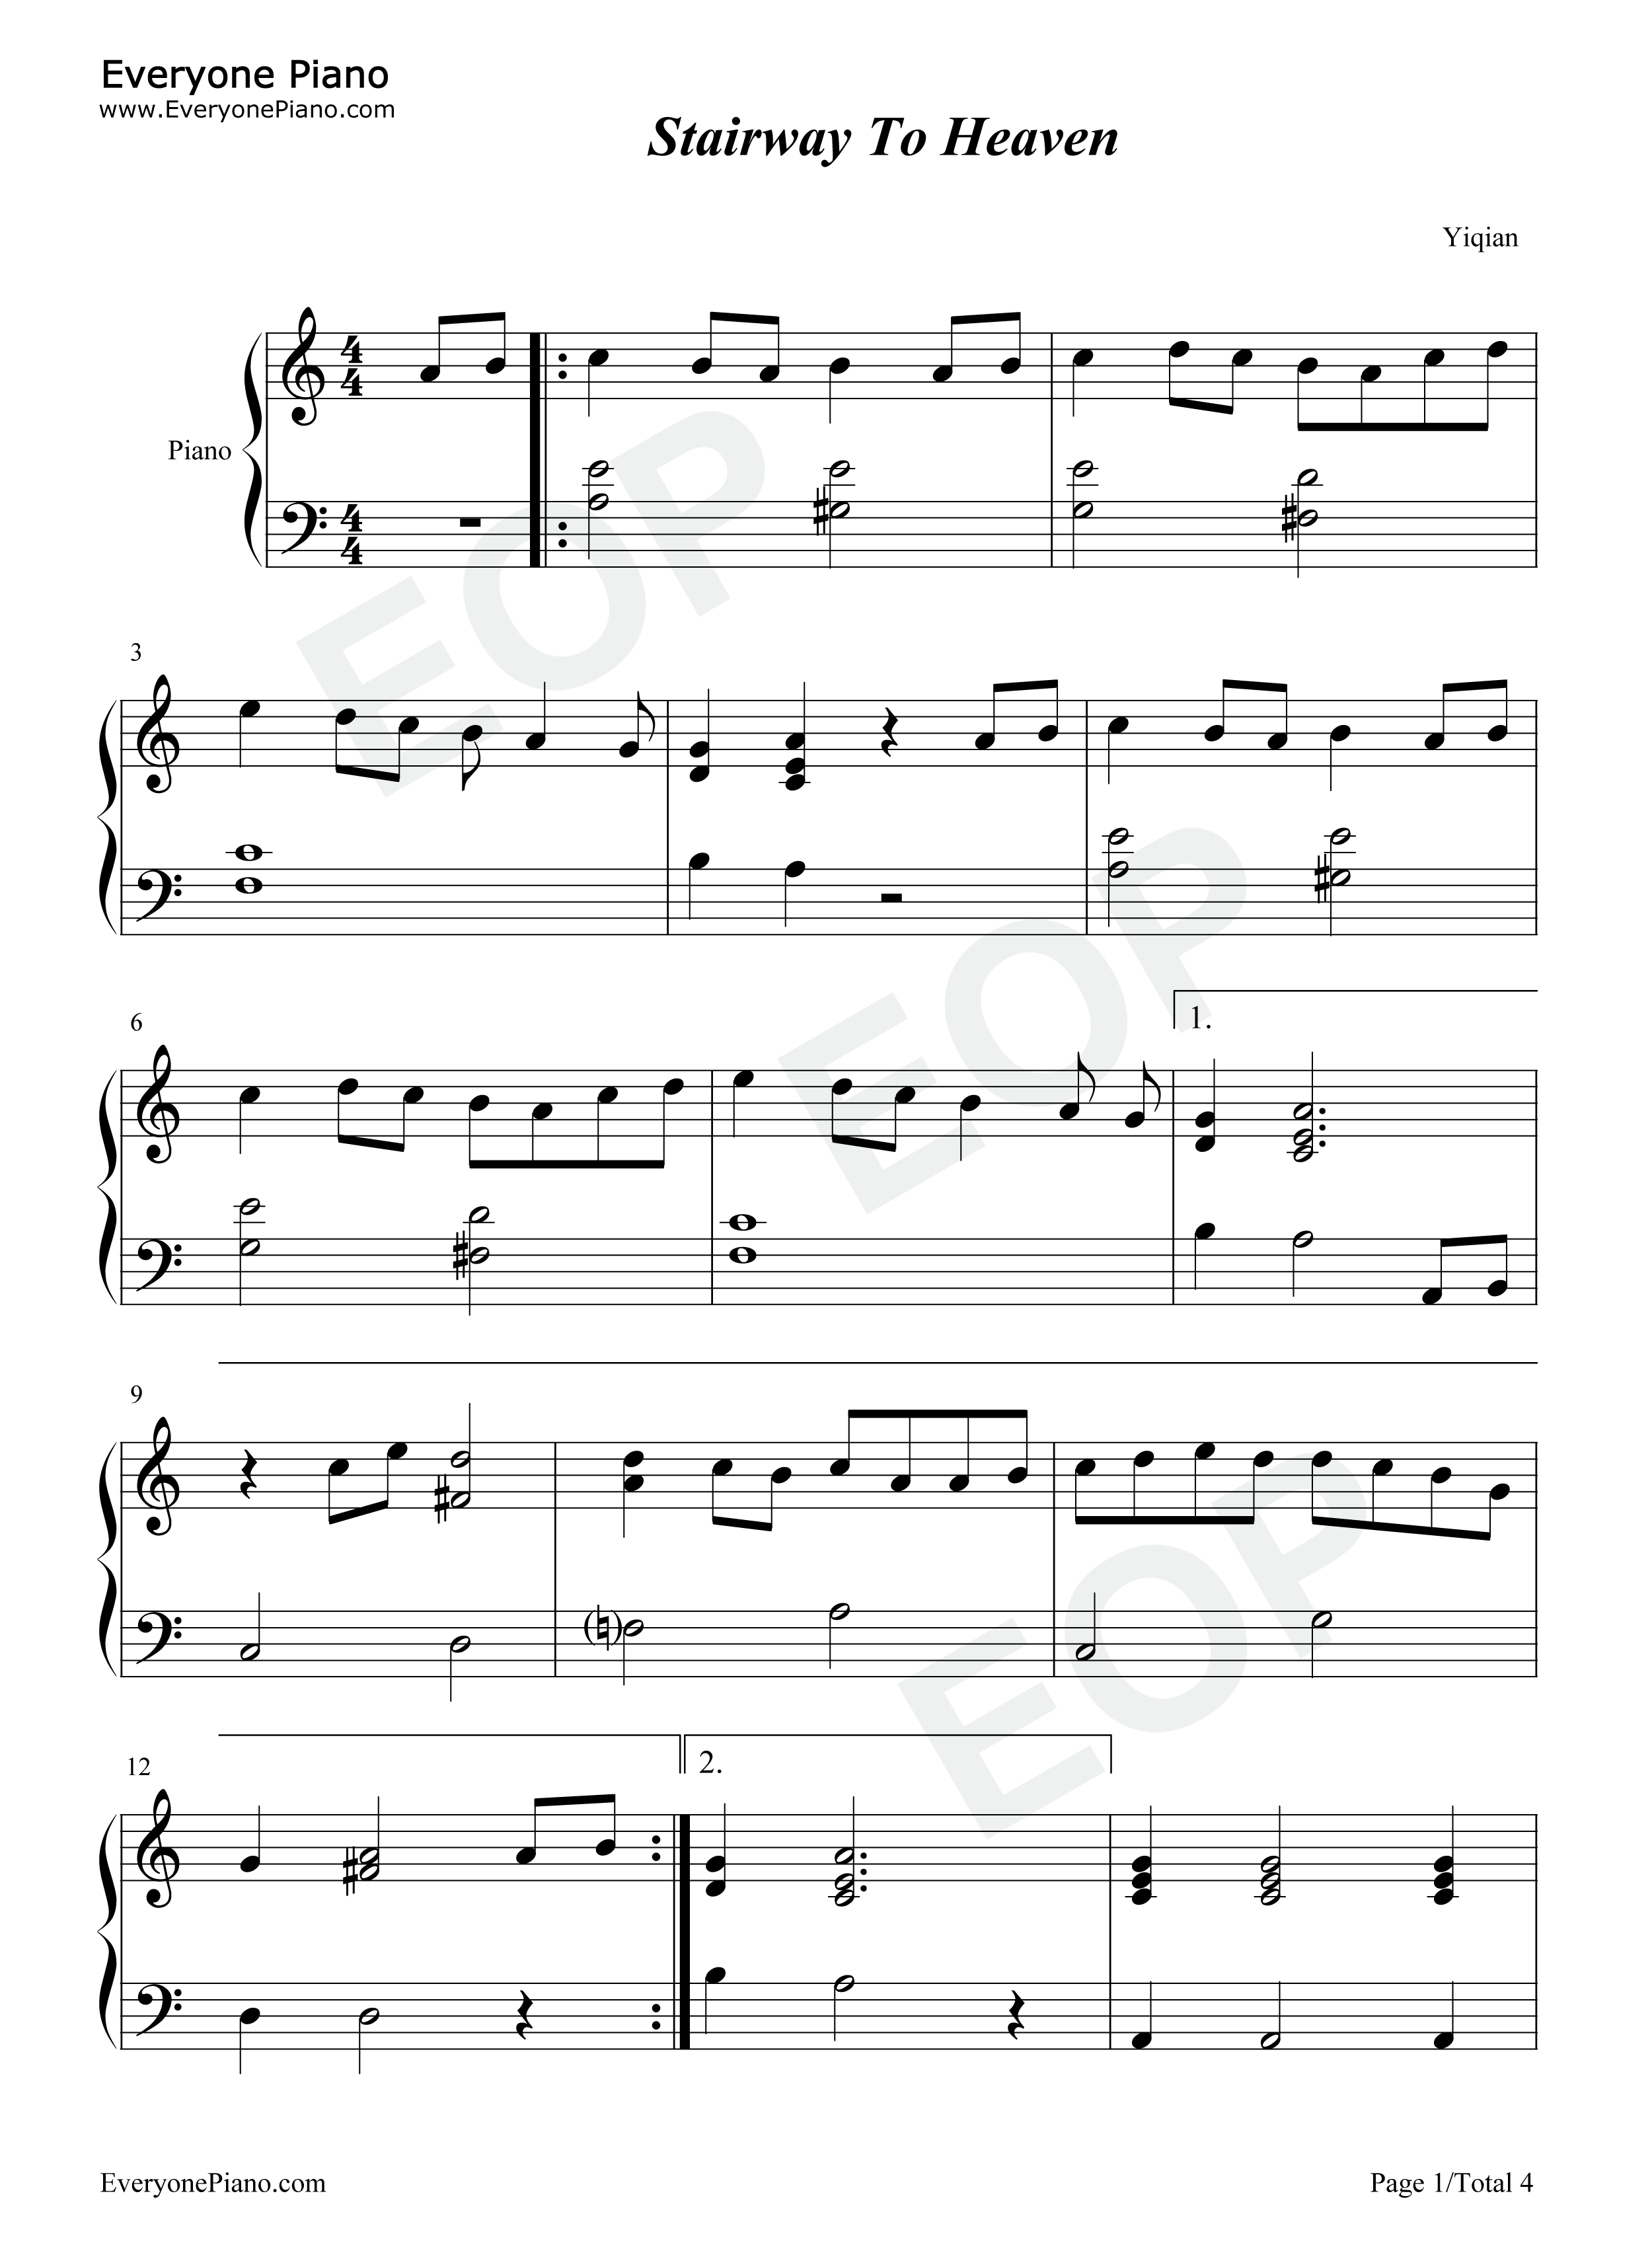 stairway to heaven sheet music free pdf